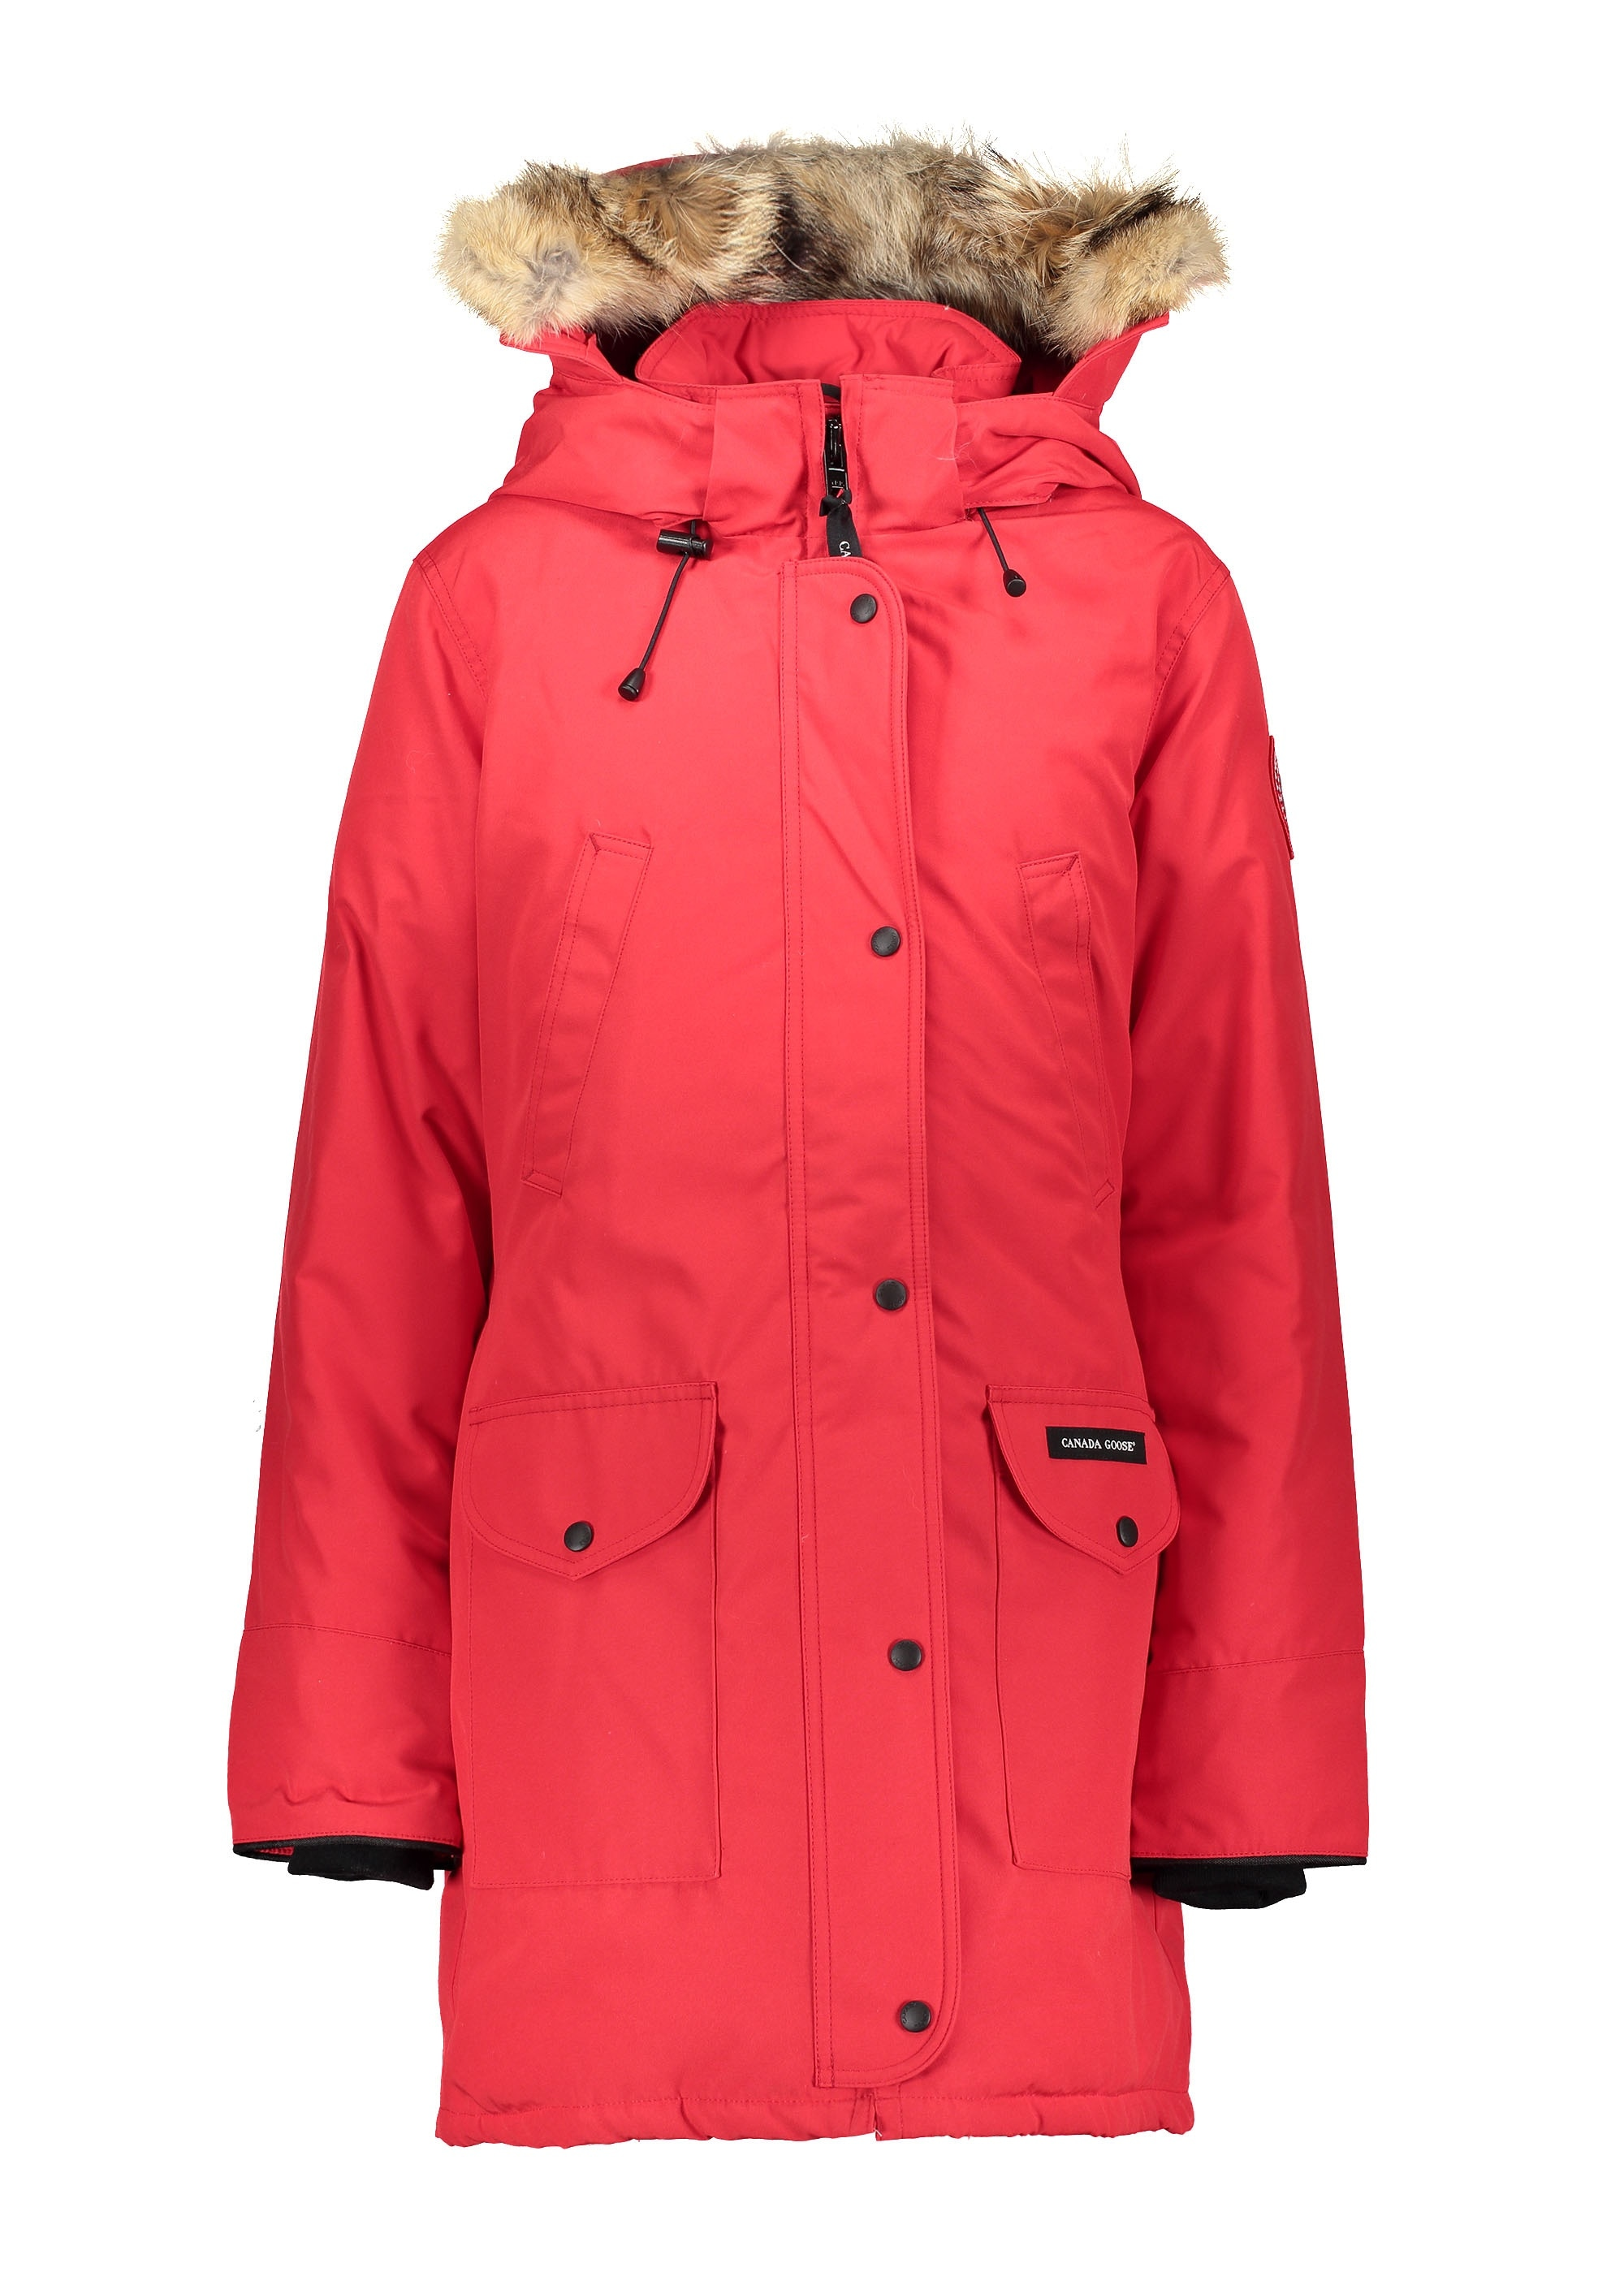 Canada Goose Ladies Trillium Parka HD - Red - Jackets from Triads UK ad256613b